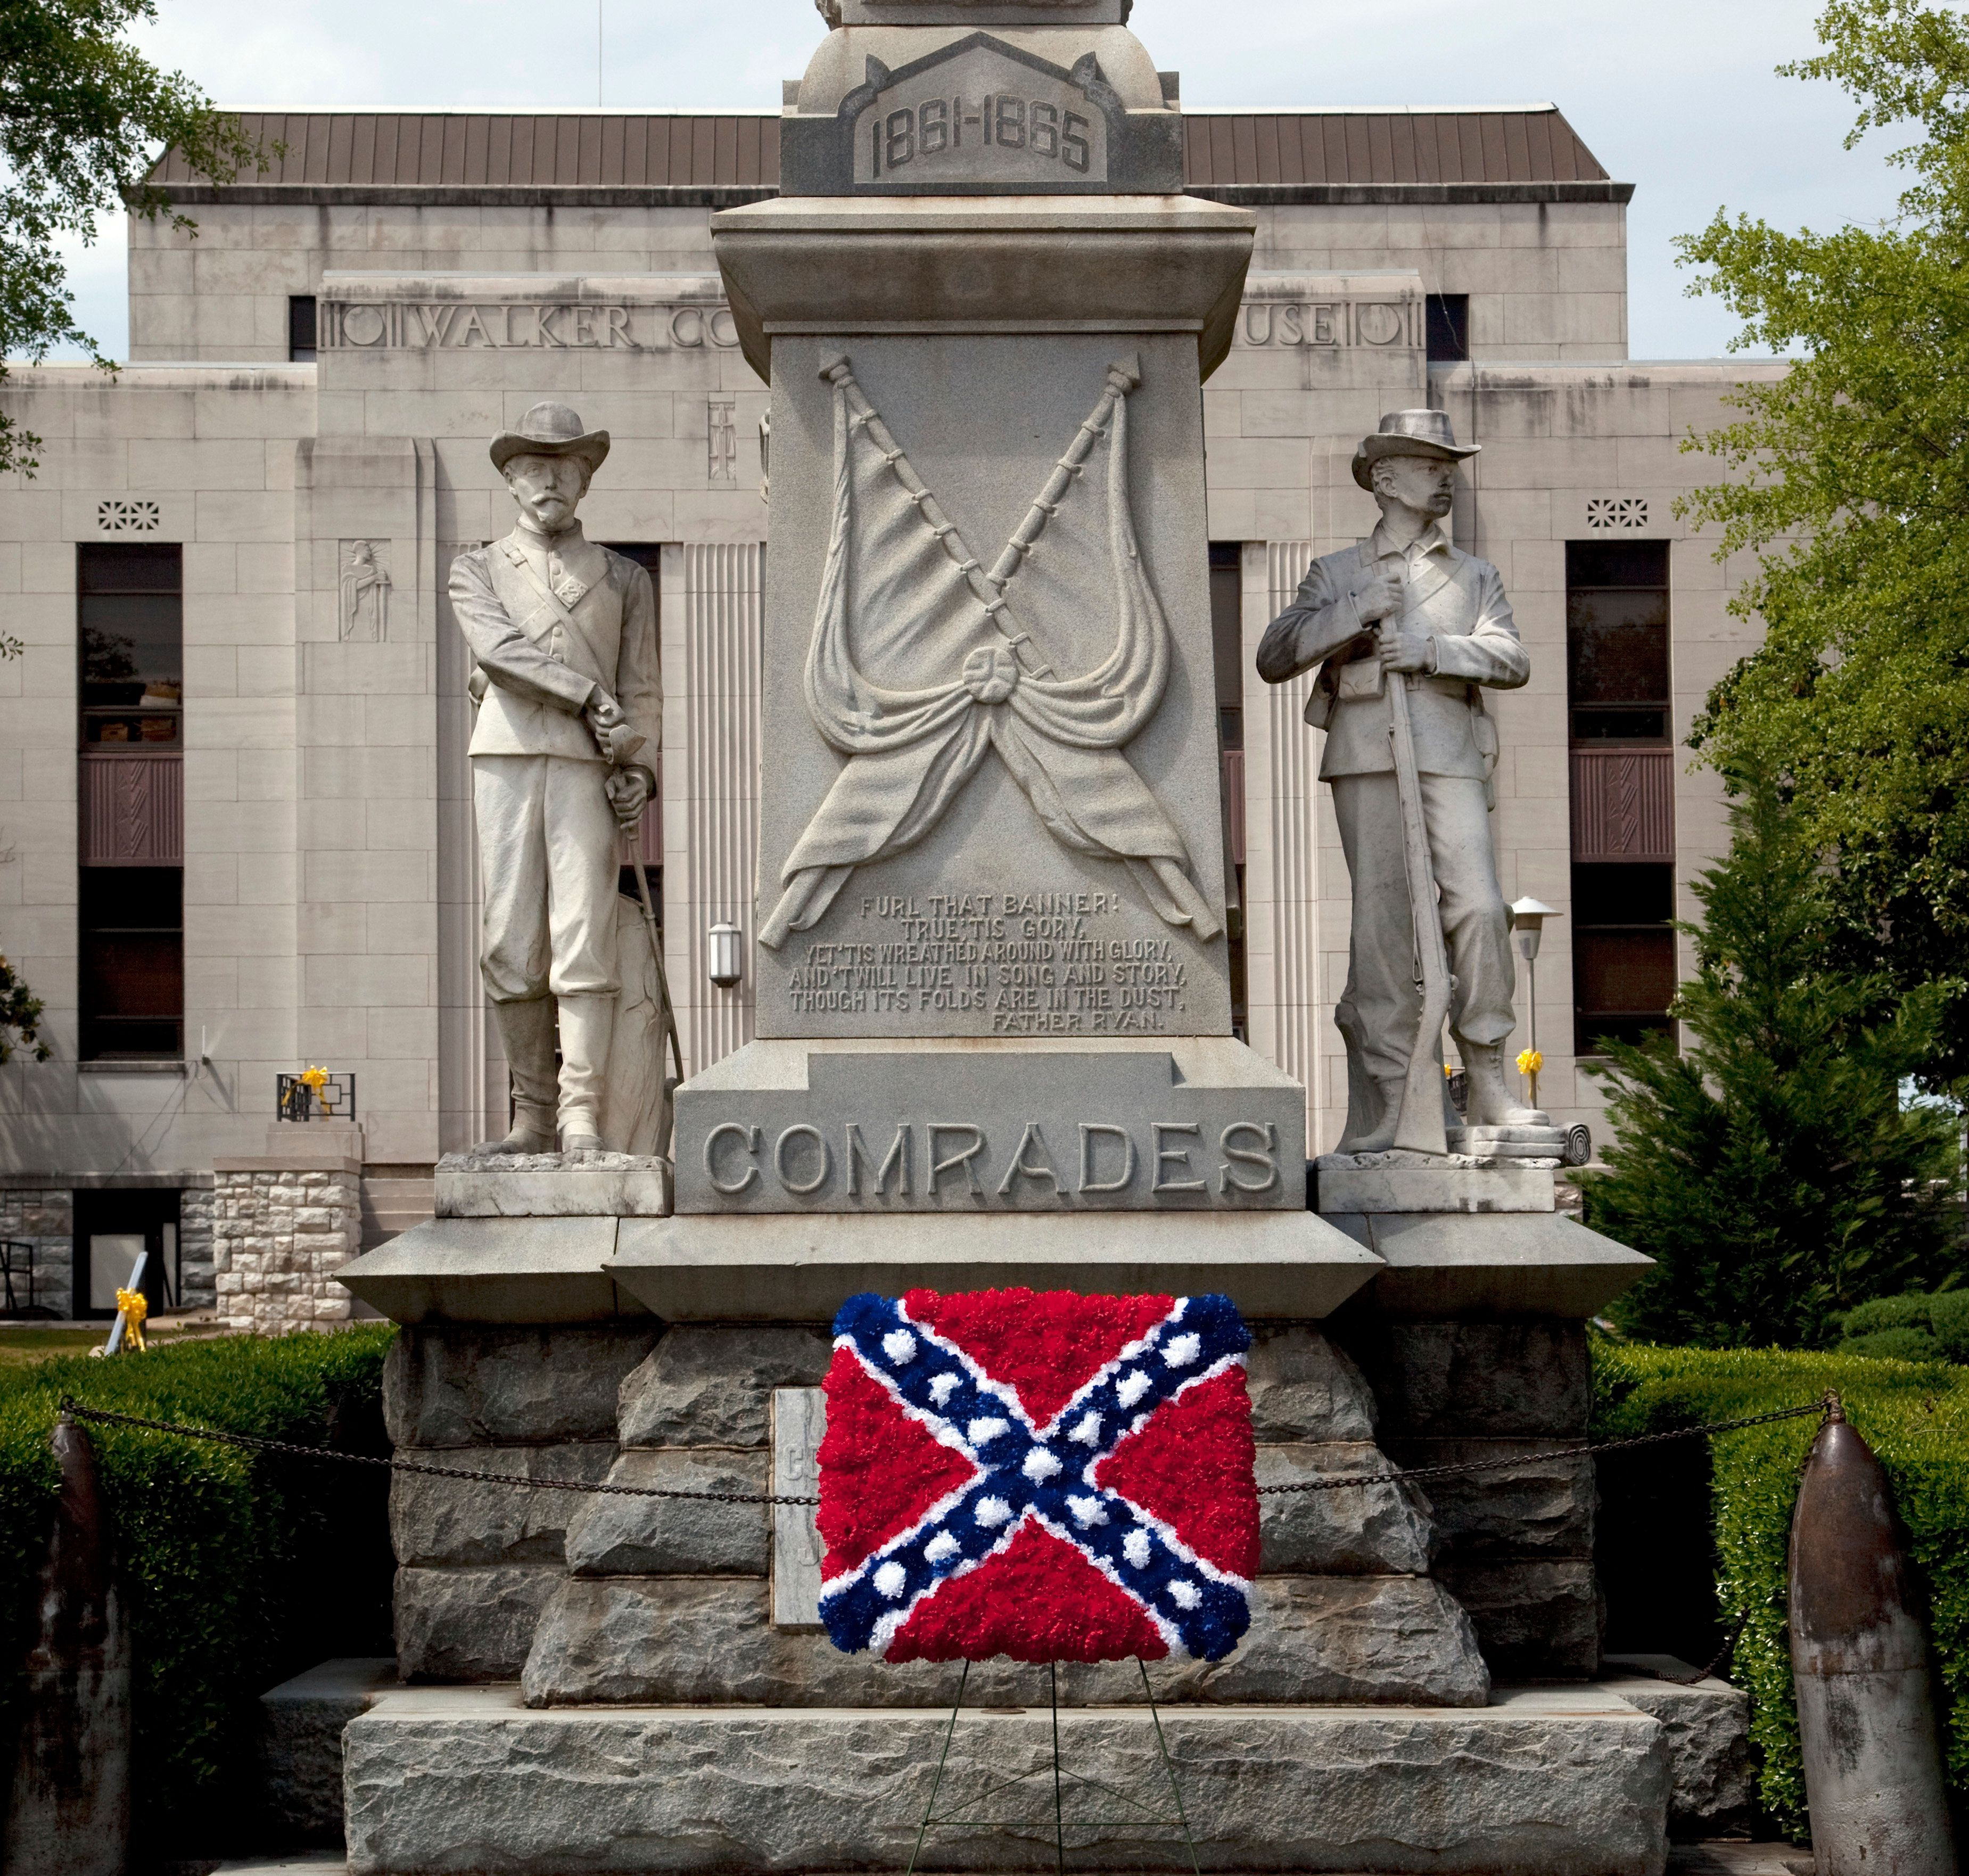 A Confederate memorial, with an added Confederate flag made out of flowers, is shown in Jasper, Alabama, in 2010.